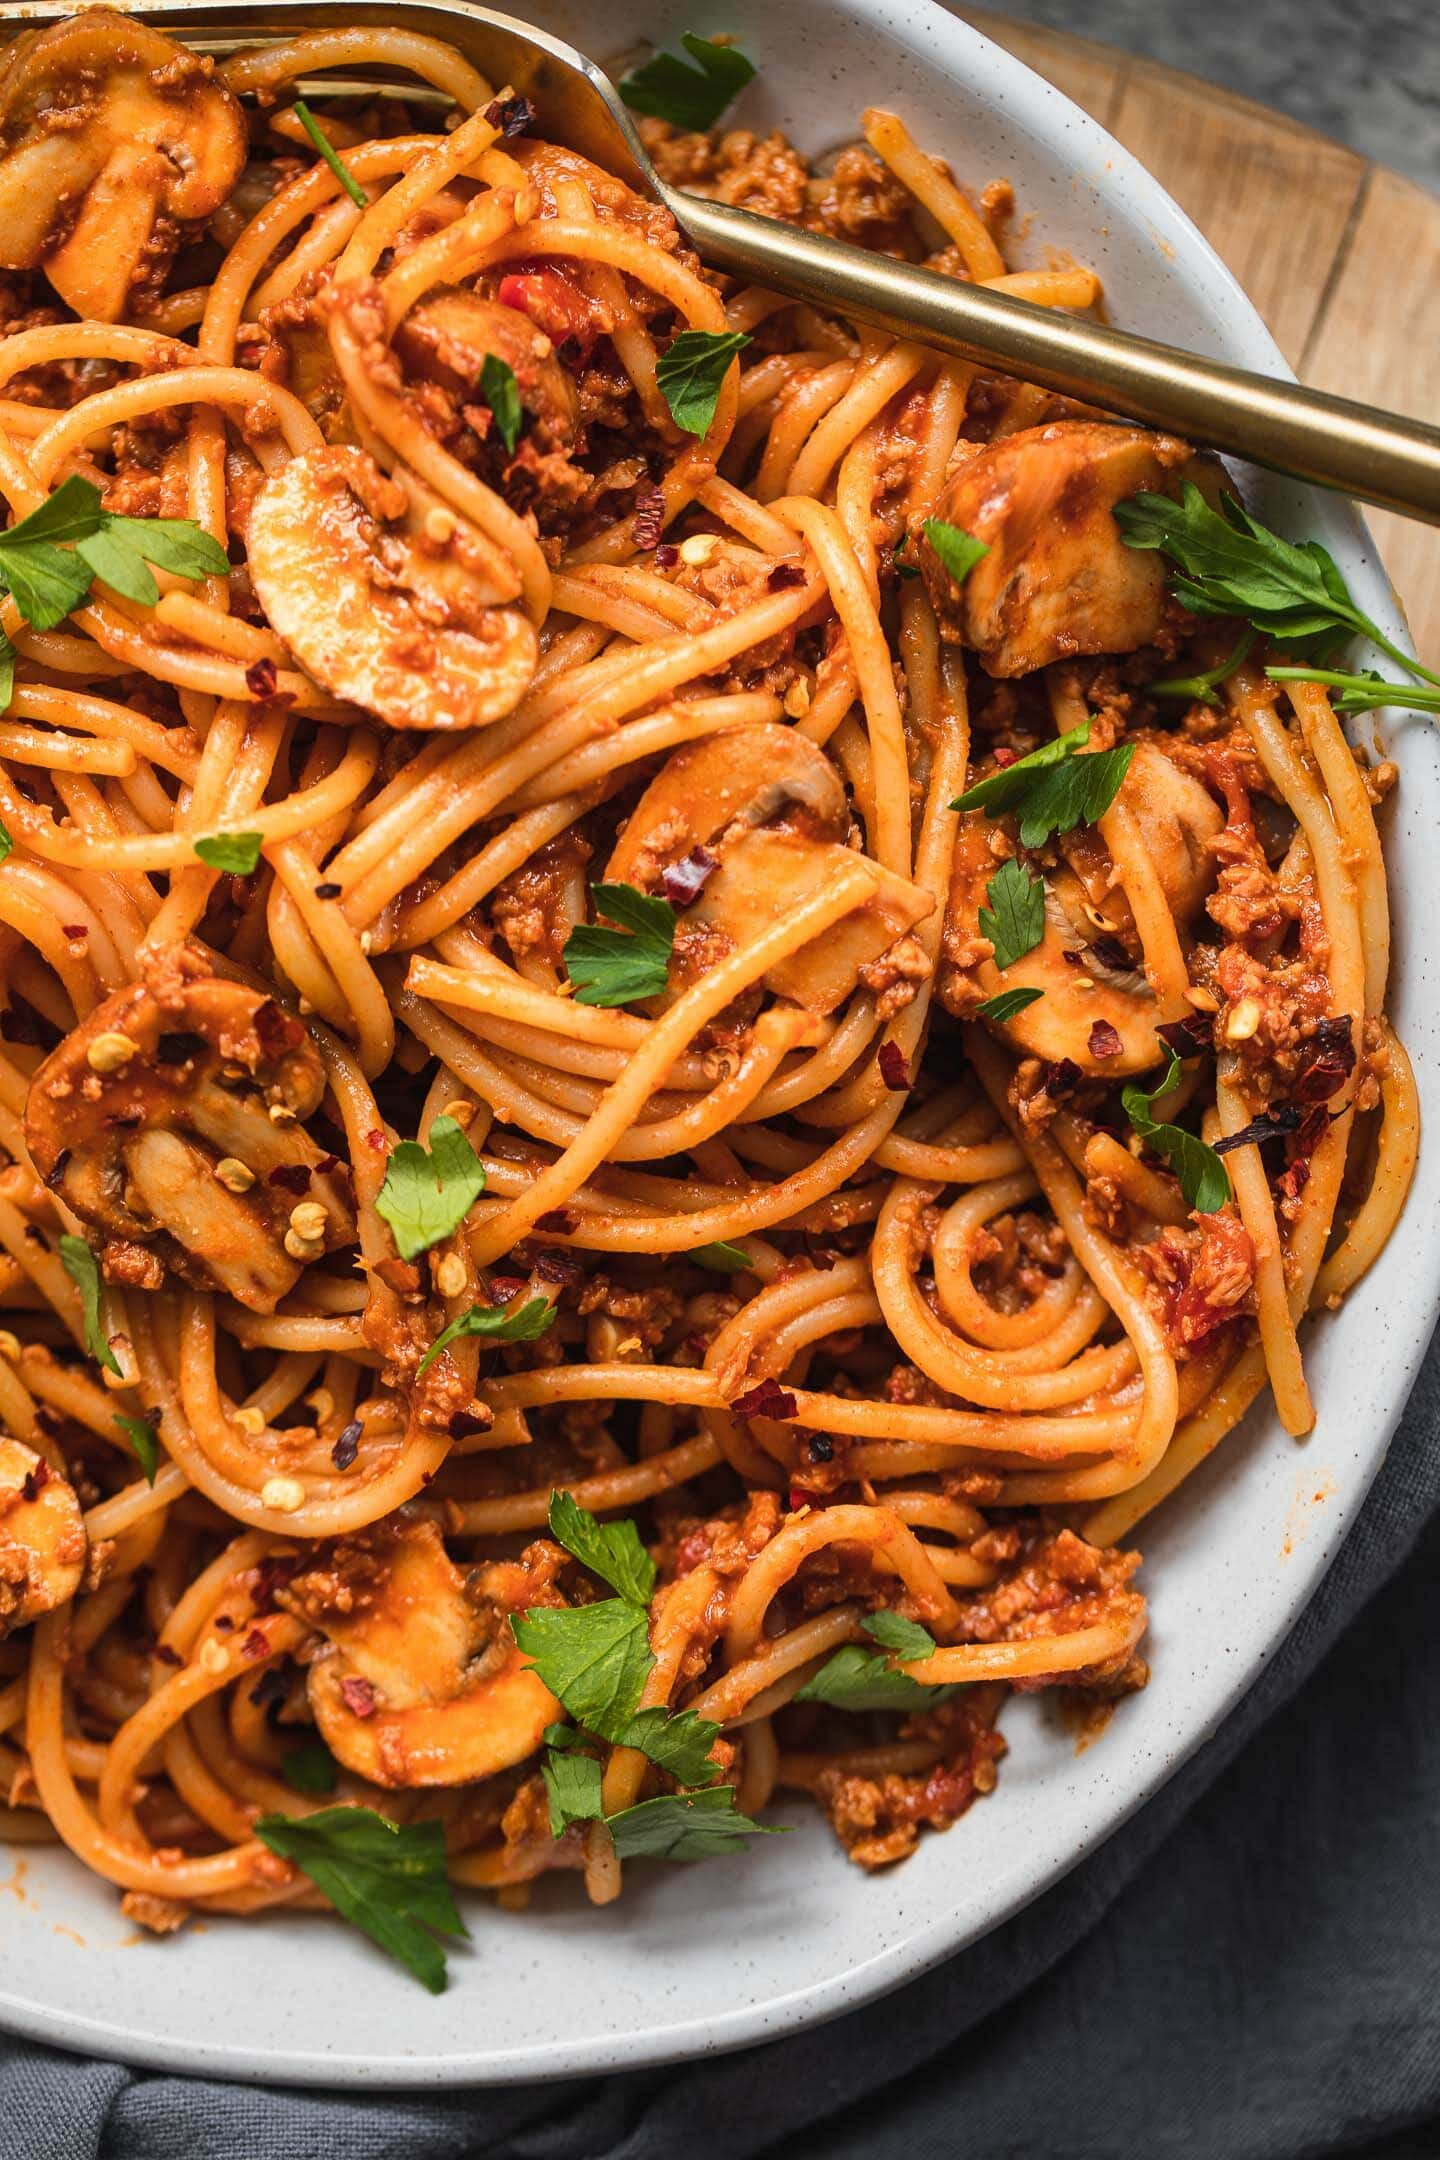 Closeup of spaghetti with a vegan sauce in a bowl